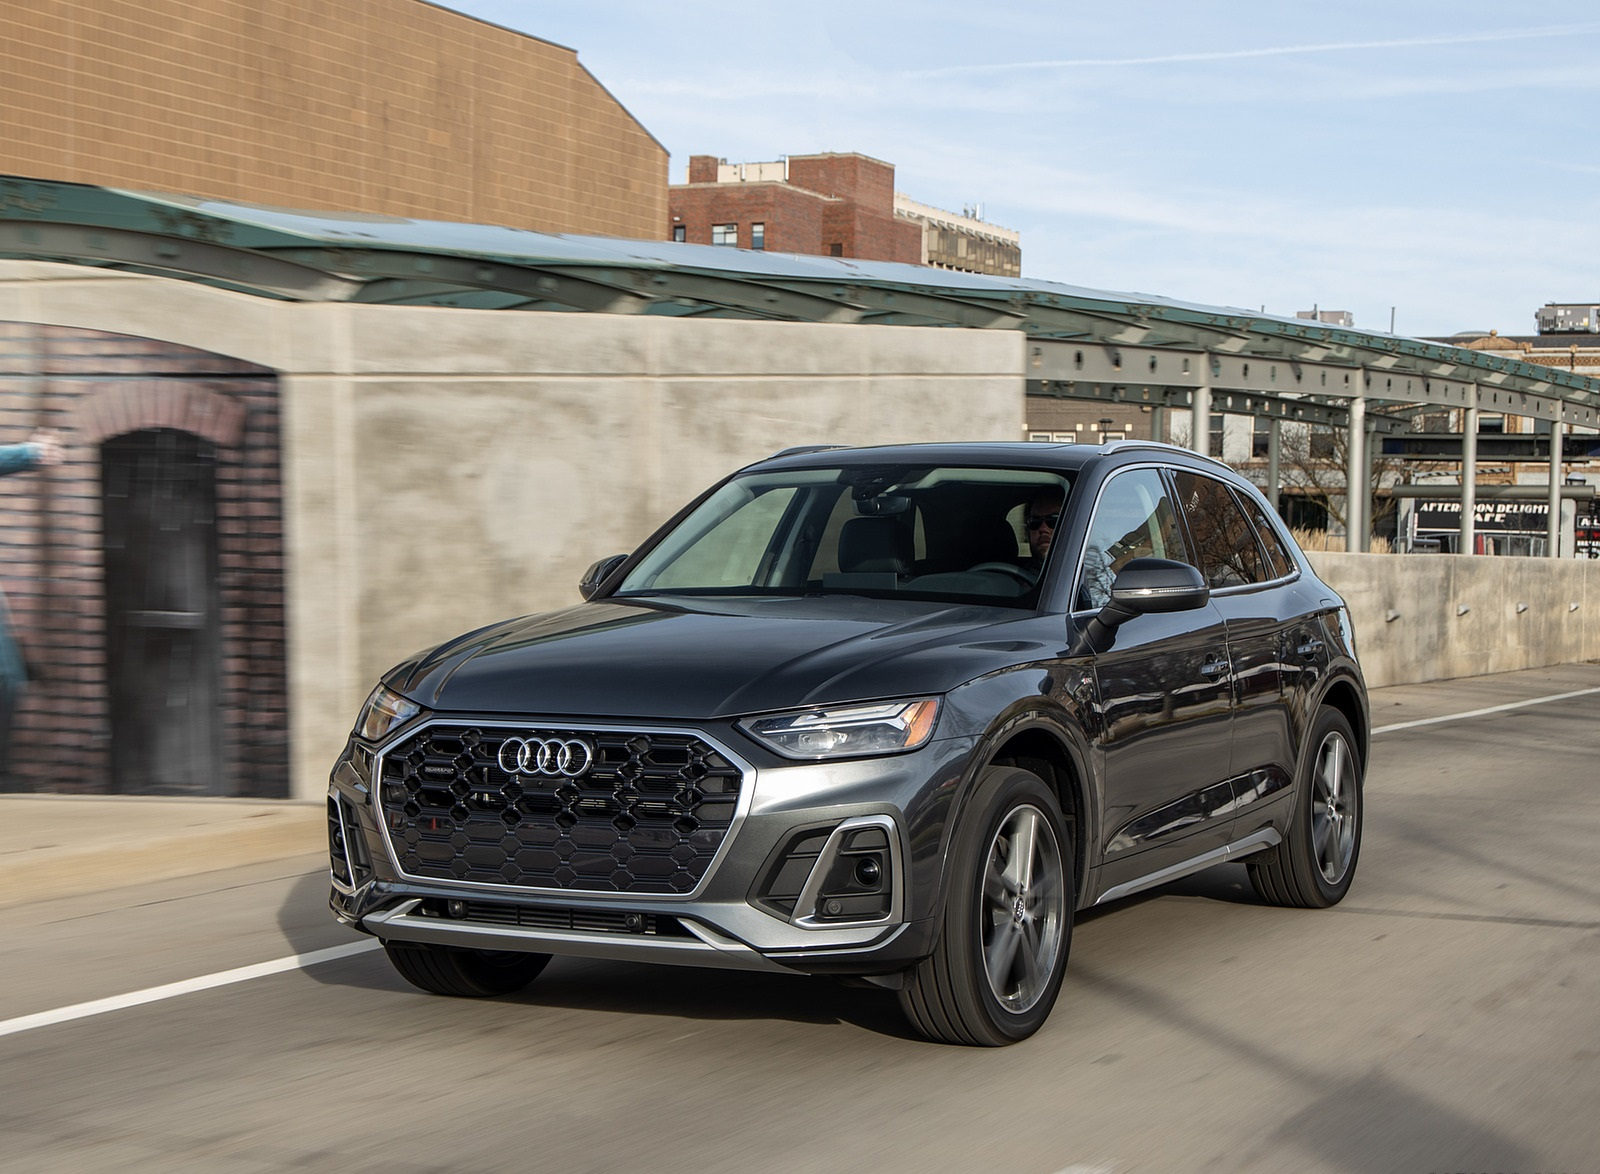 2021 Audi Q5 55 TFSI e quattro PHEV (US-Spec) Front Three-Quarter Wallpapers (10)